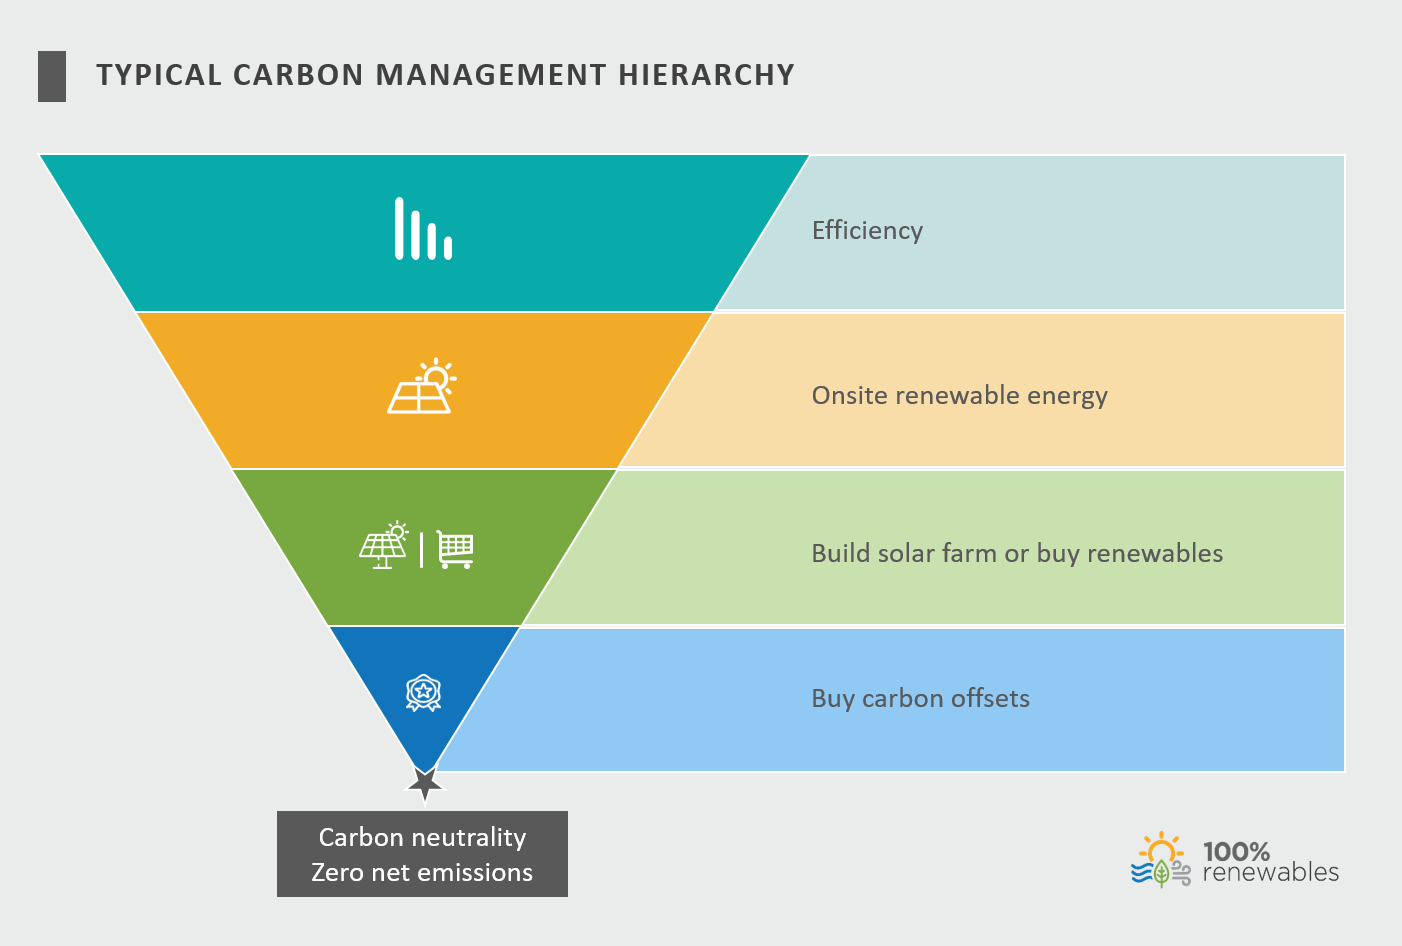 Typical carbon management hierarchy